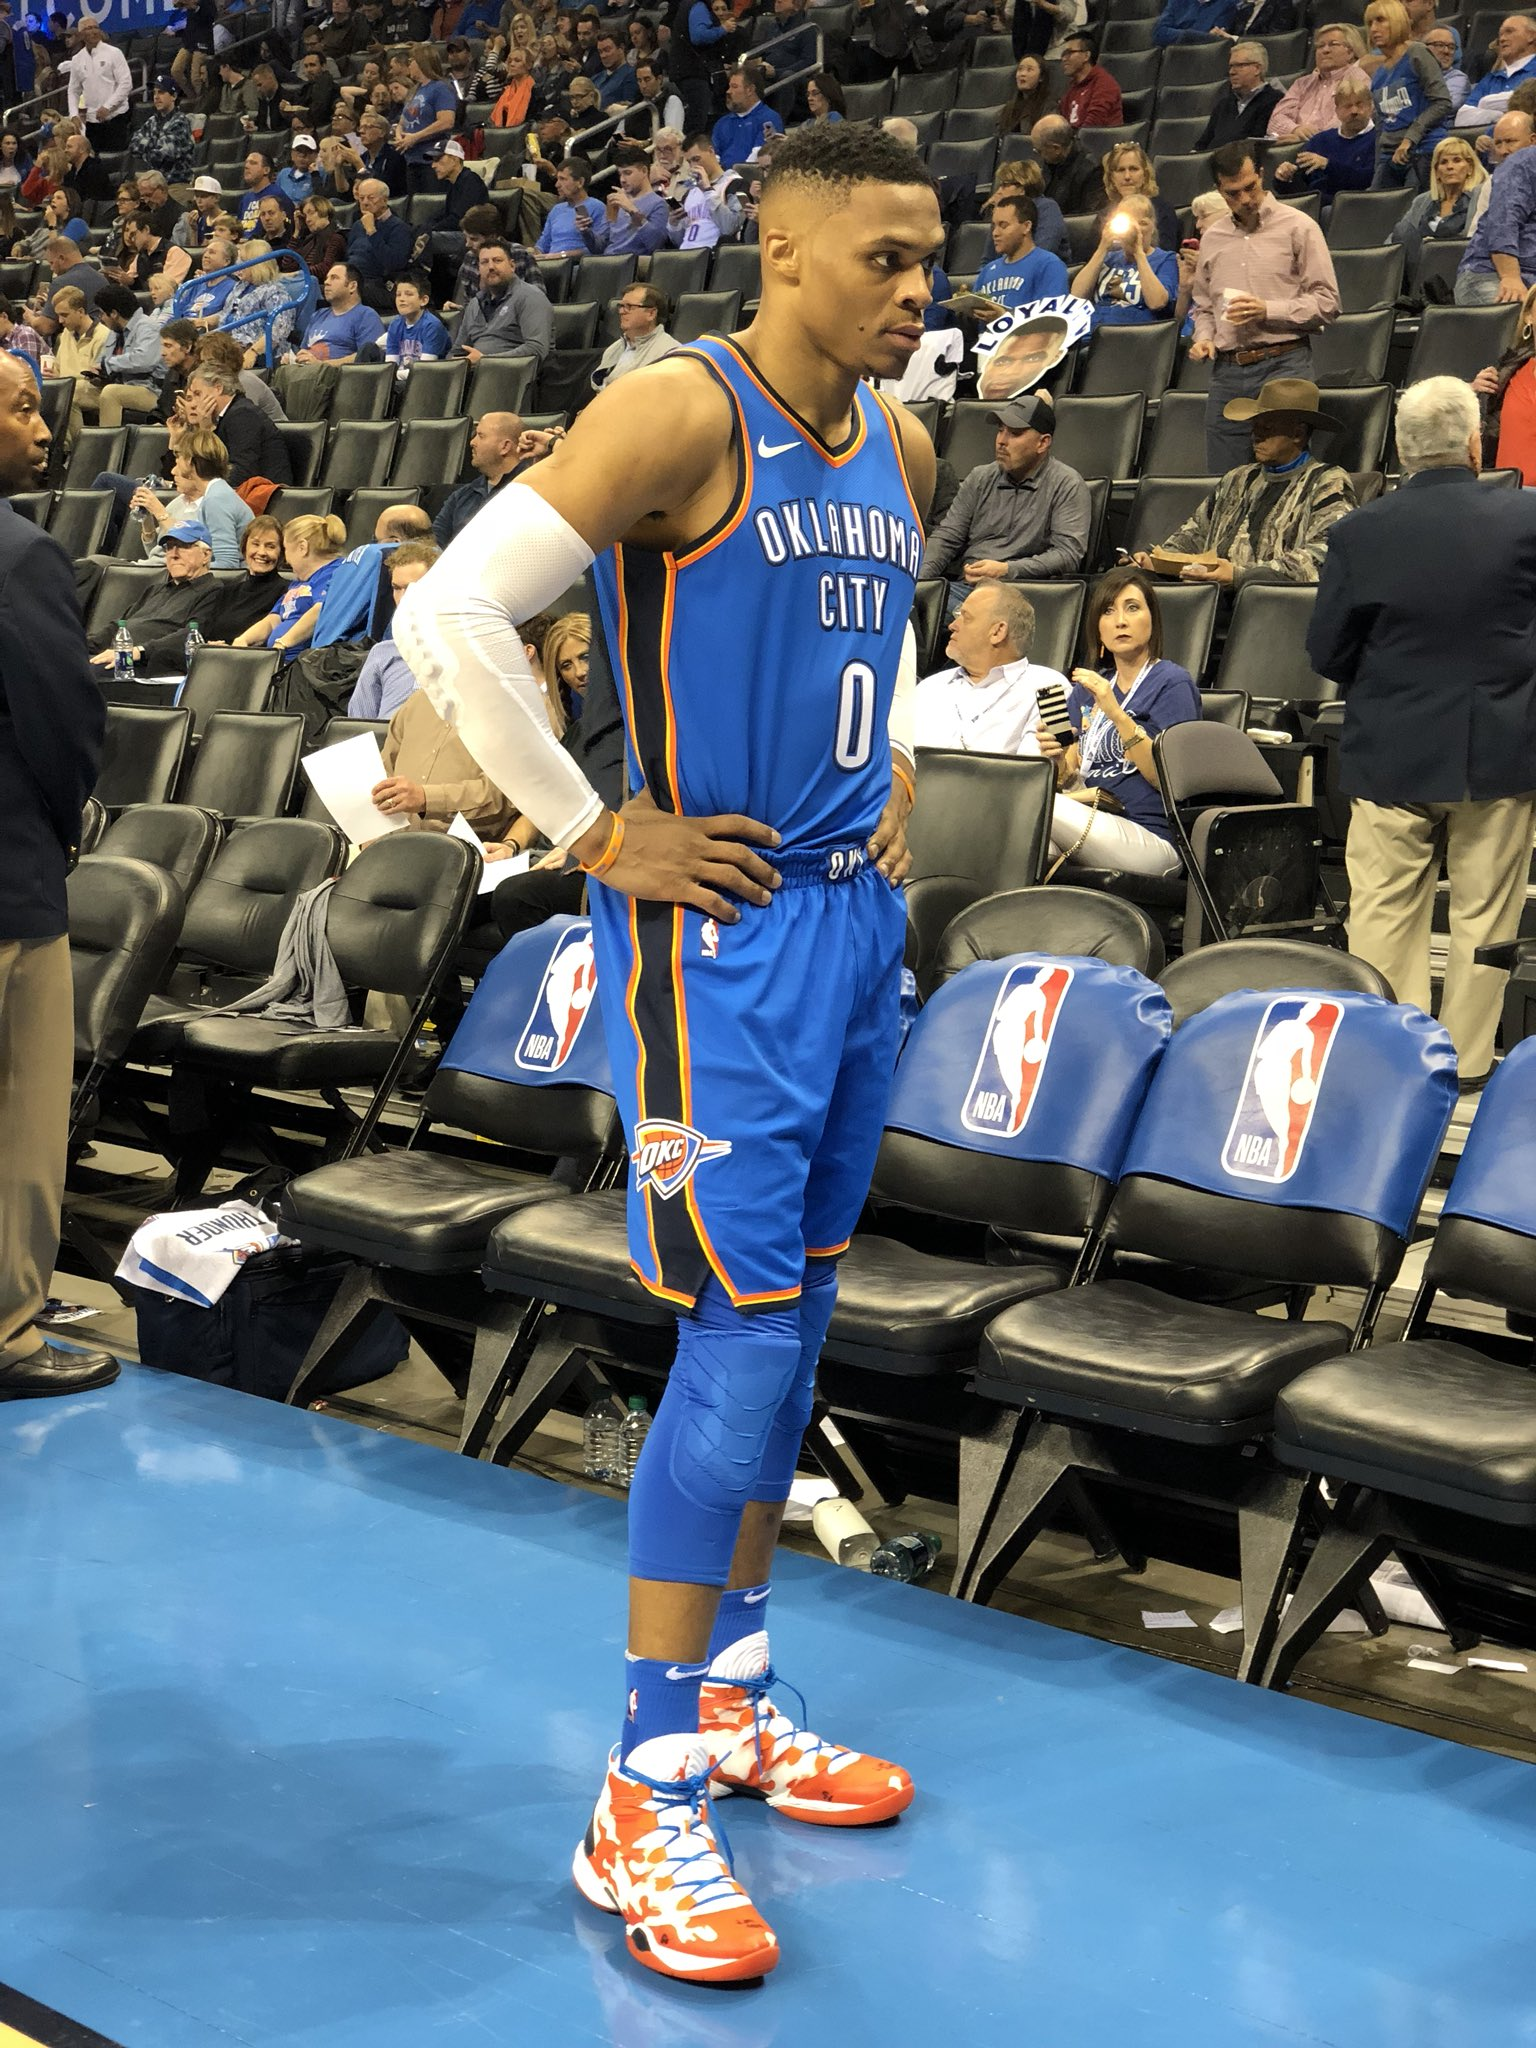 20 points 7 rebounds  6 assists  at the half.  #ThunderUp https://t.co/oA3mUC0nB2